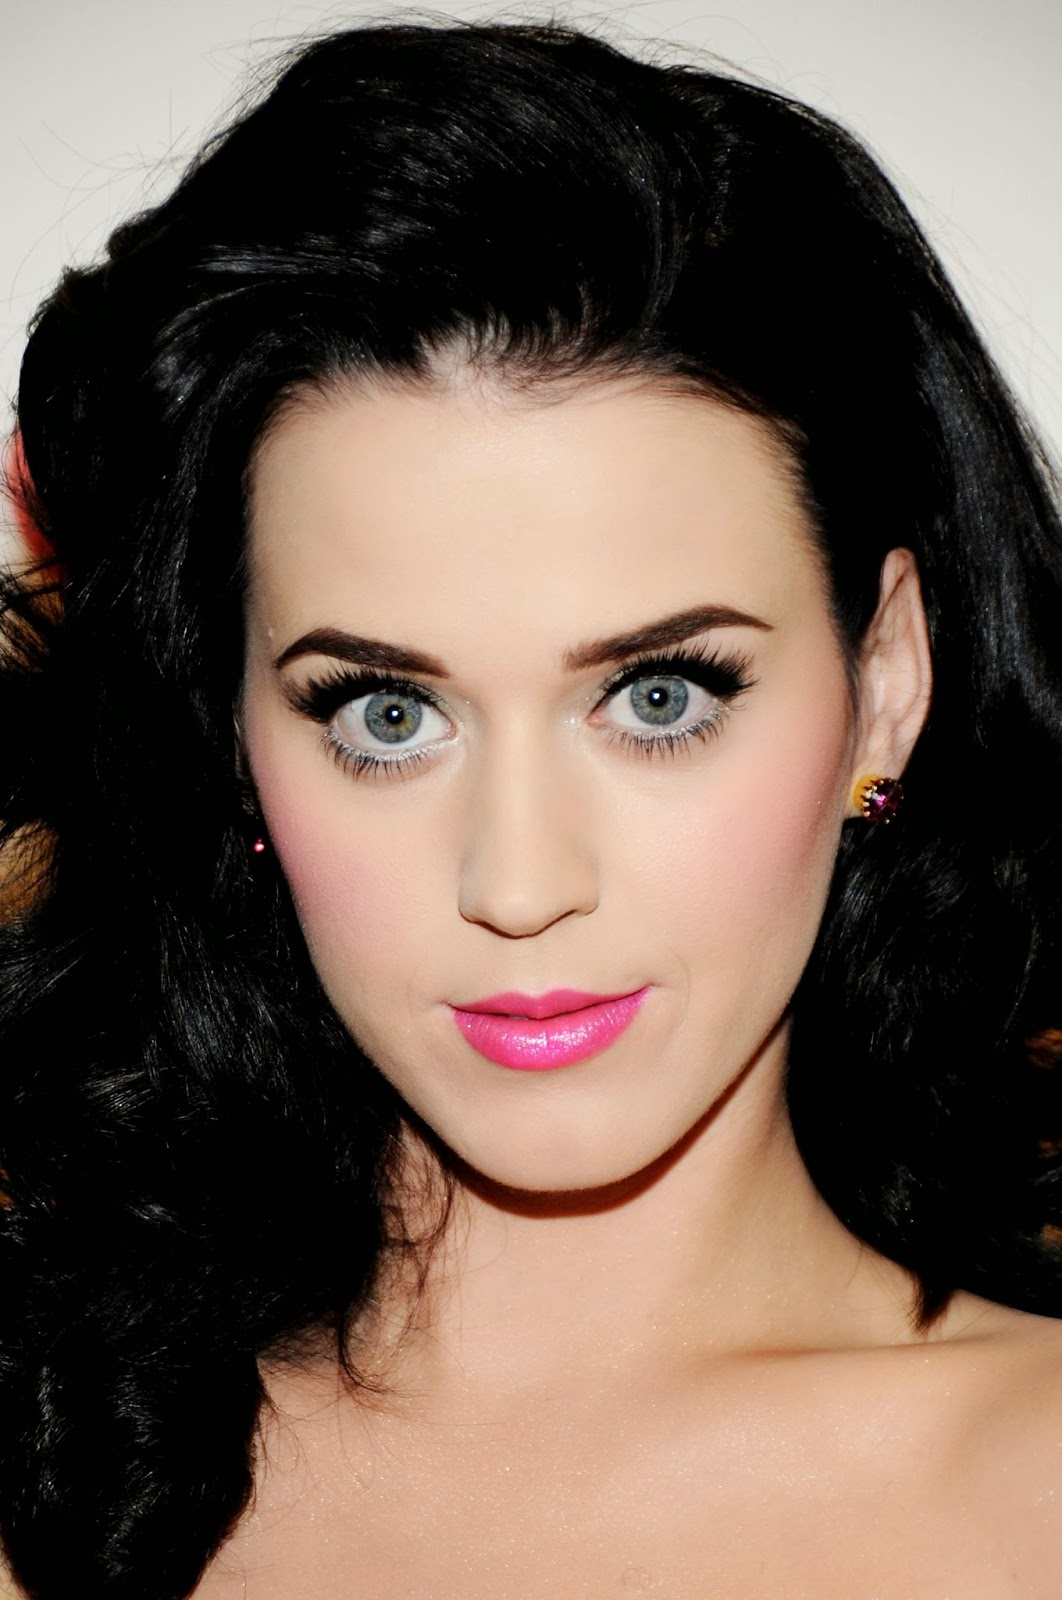 Katy Perry HD Wallpapers - HD Wallpapers Blog Katy Perry